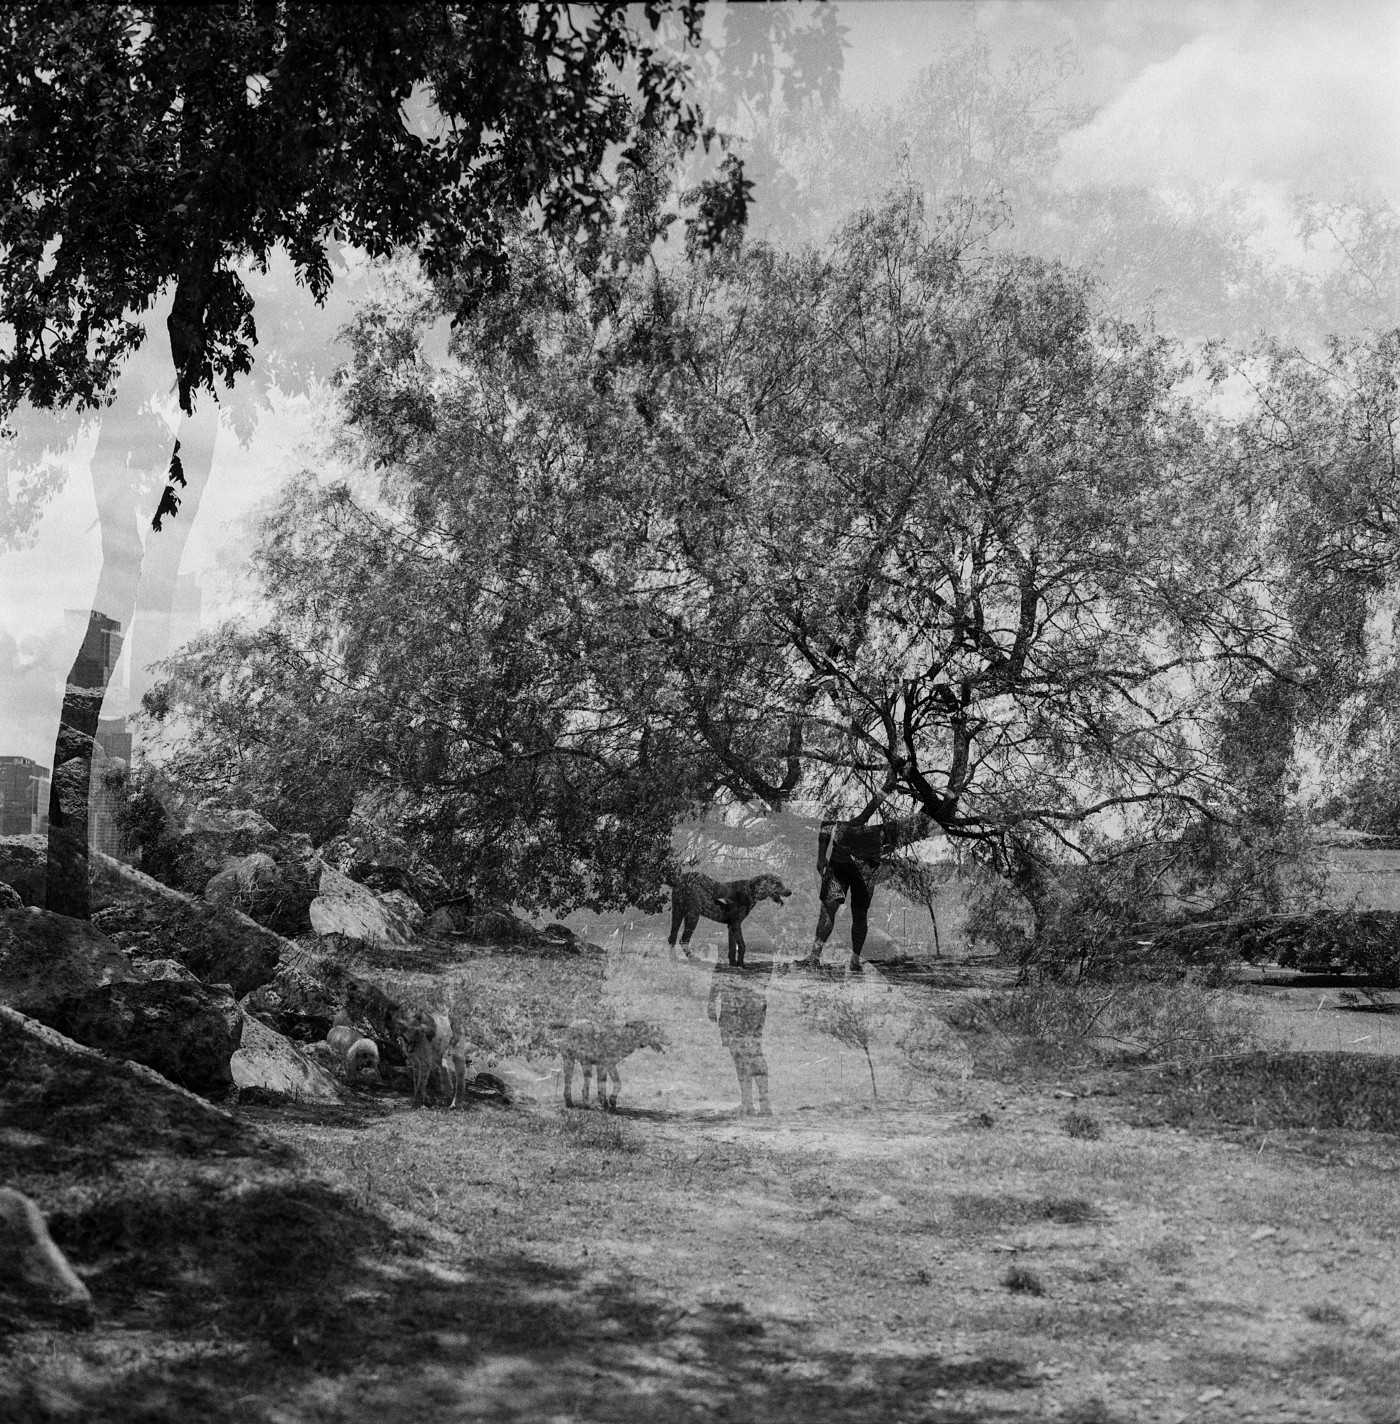 A double exposure image of the silhouette of a person with a dog, surrounded by trees, made with a Kodak Brownie camera.